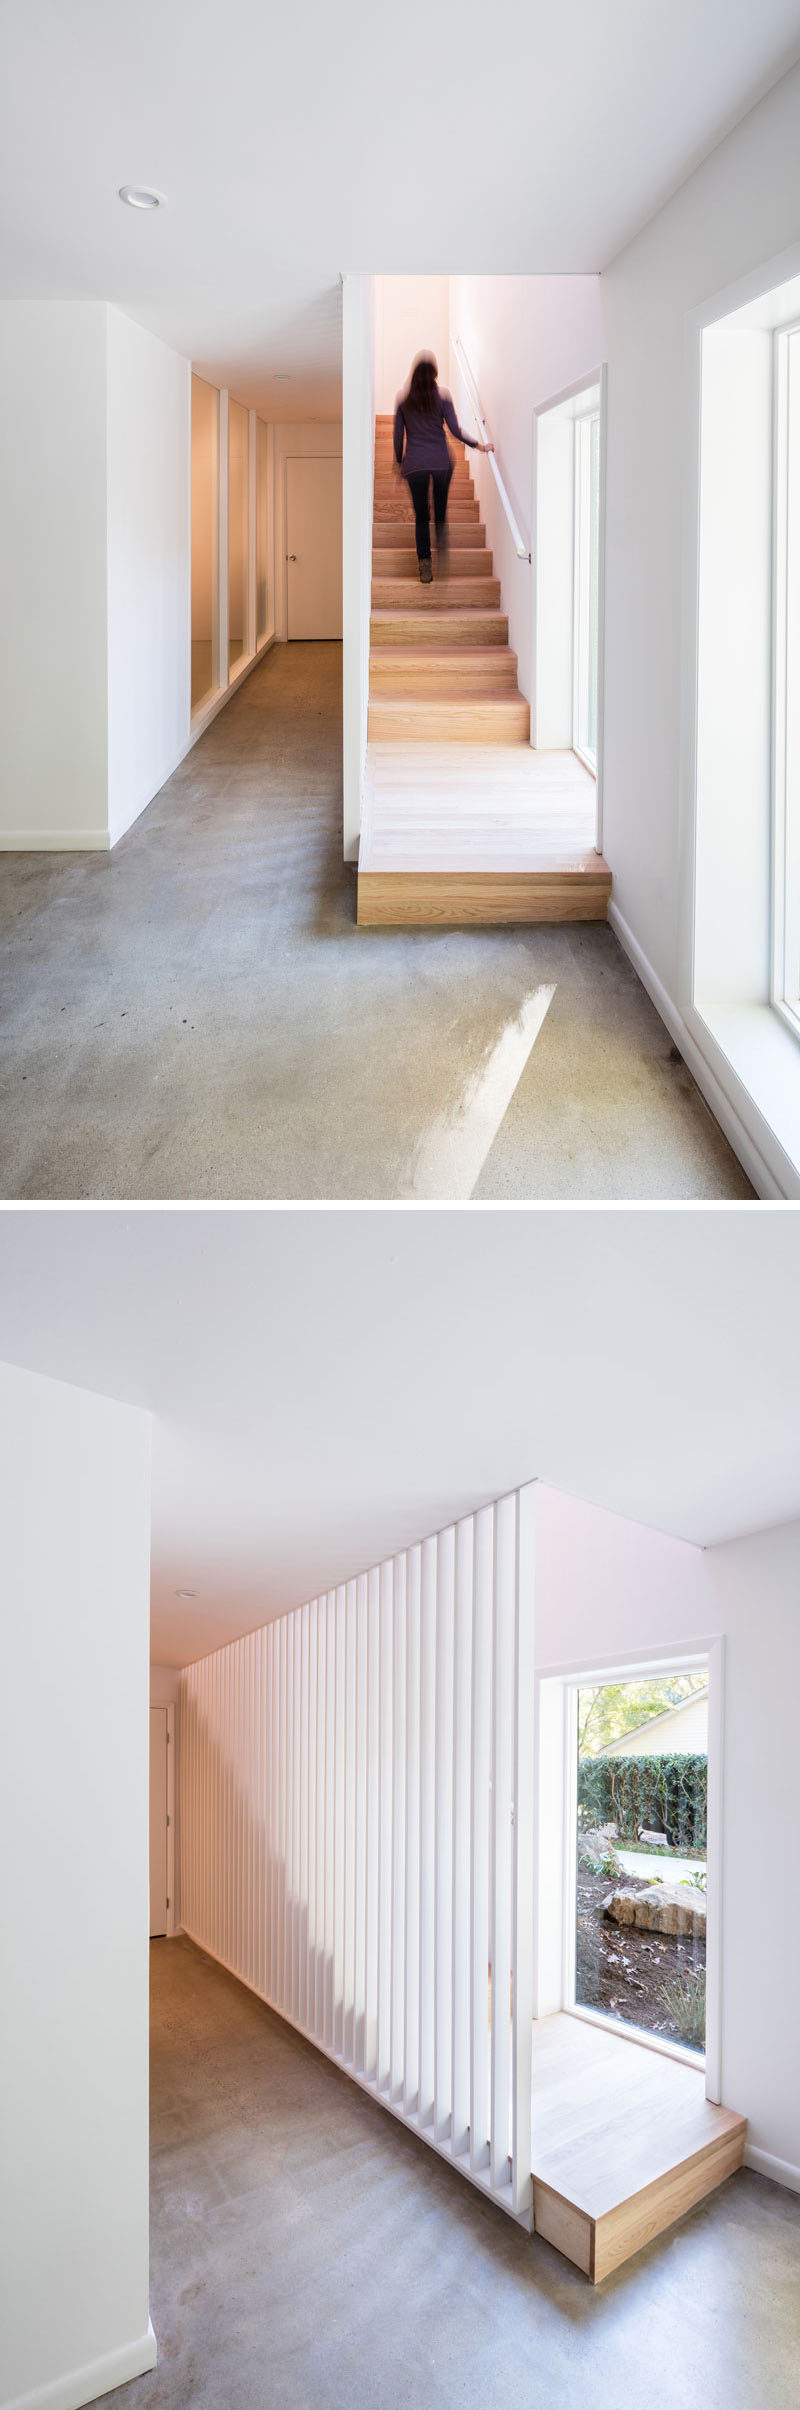 These simple and modern wood stairs add a natural touch to white interior, while slats allow light from the window to travel through the space.